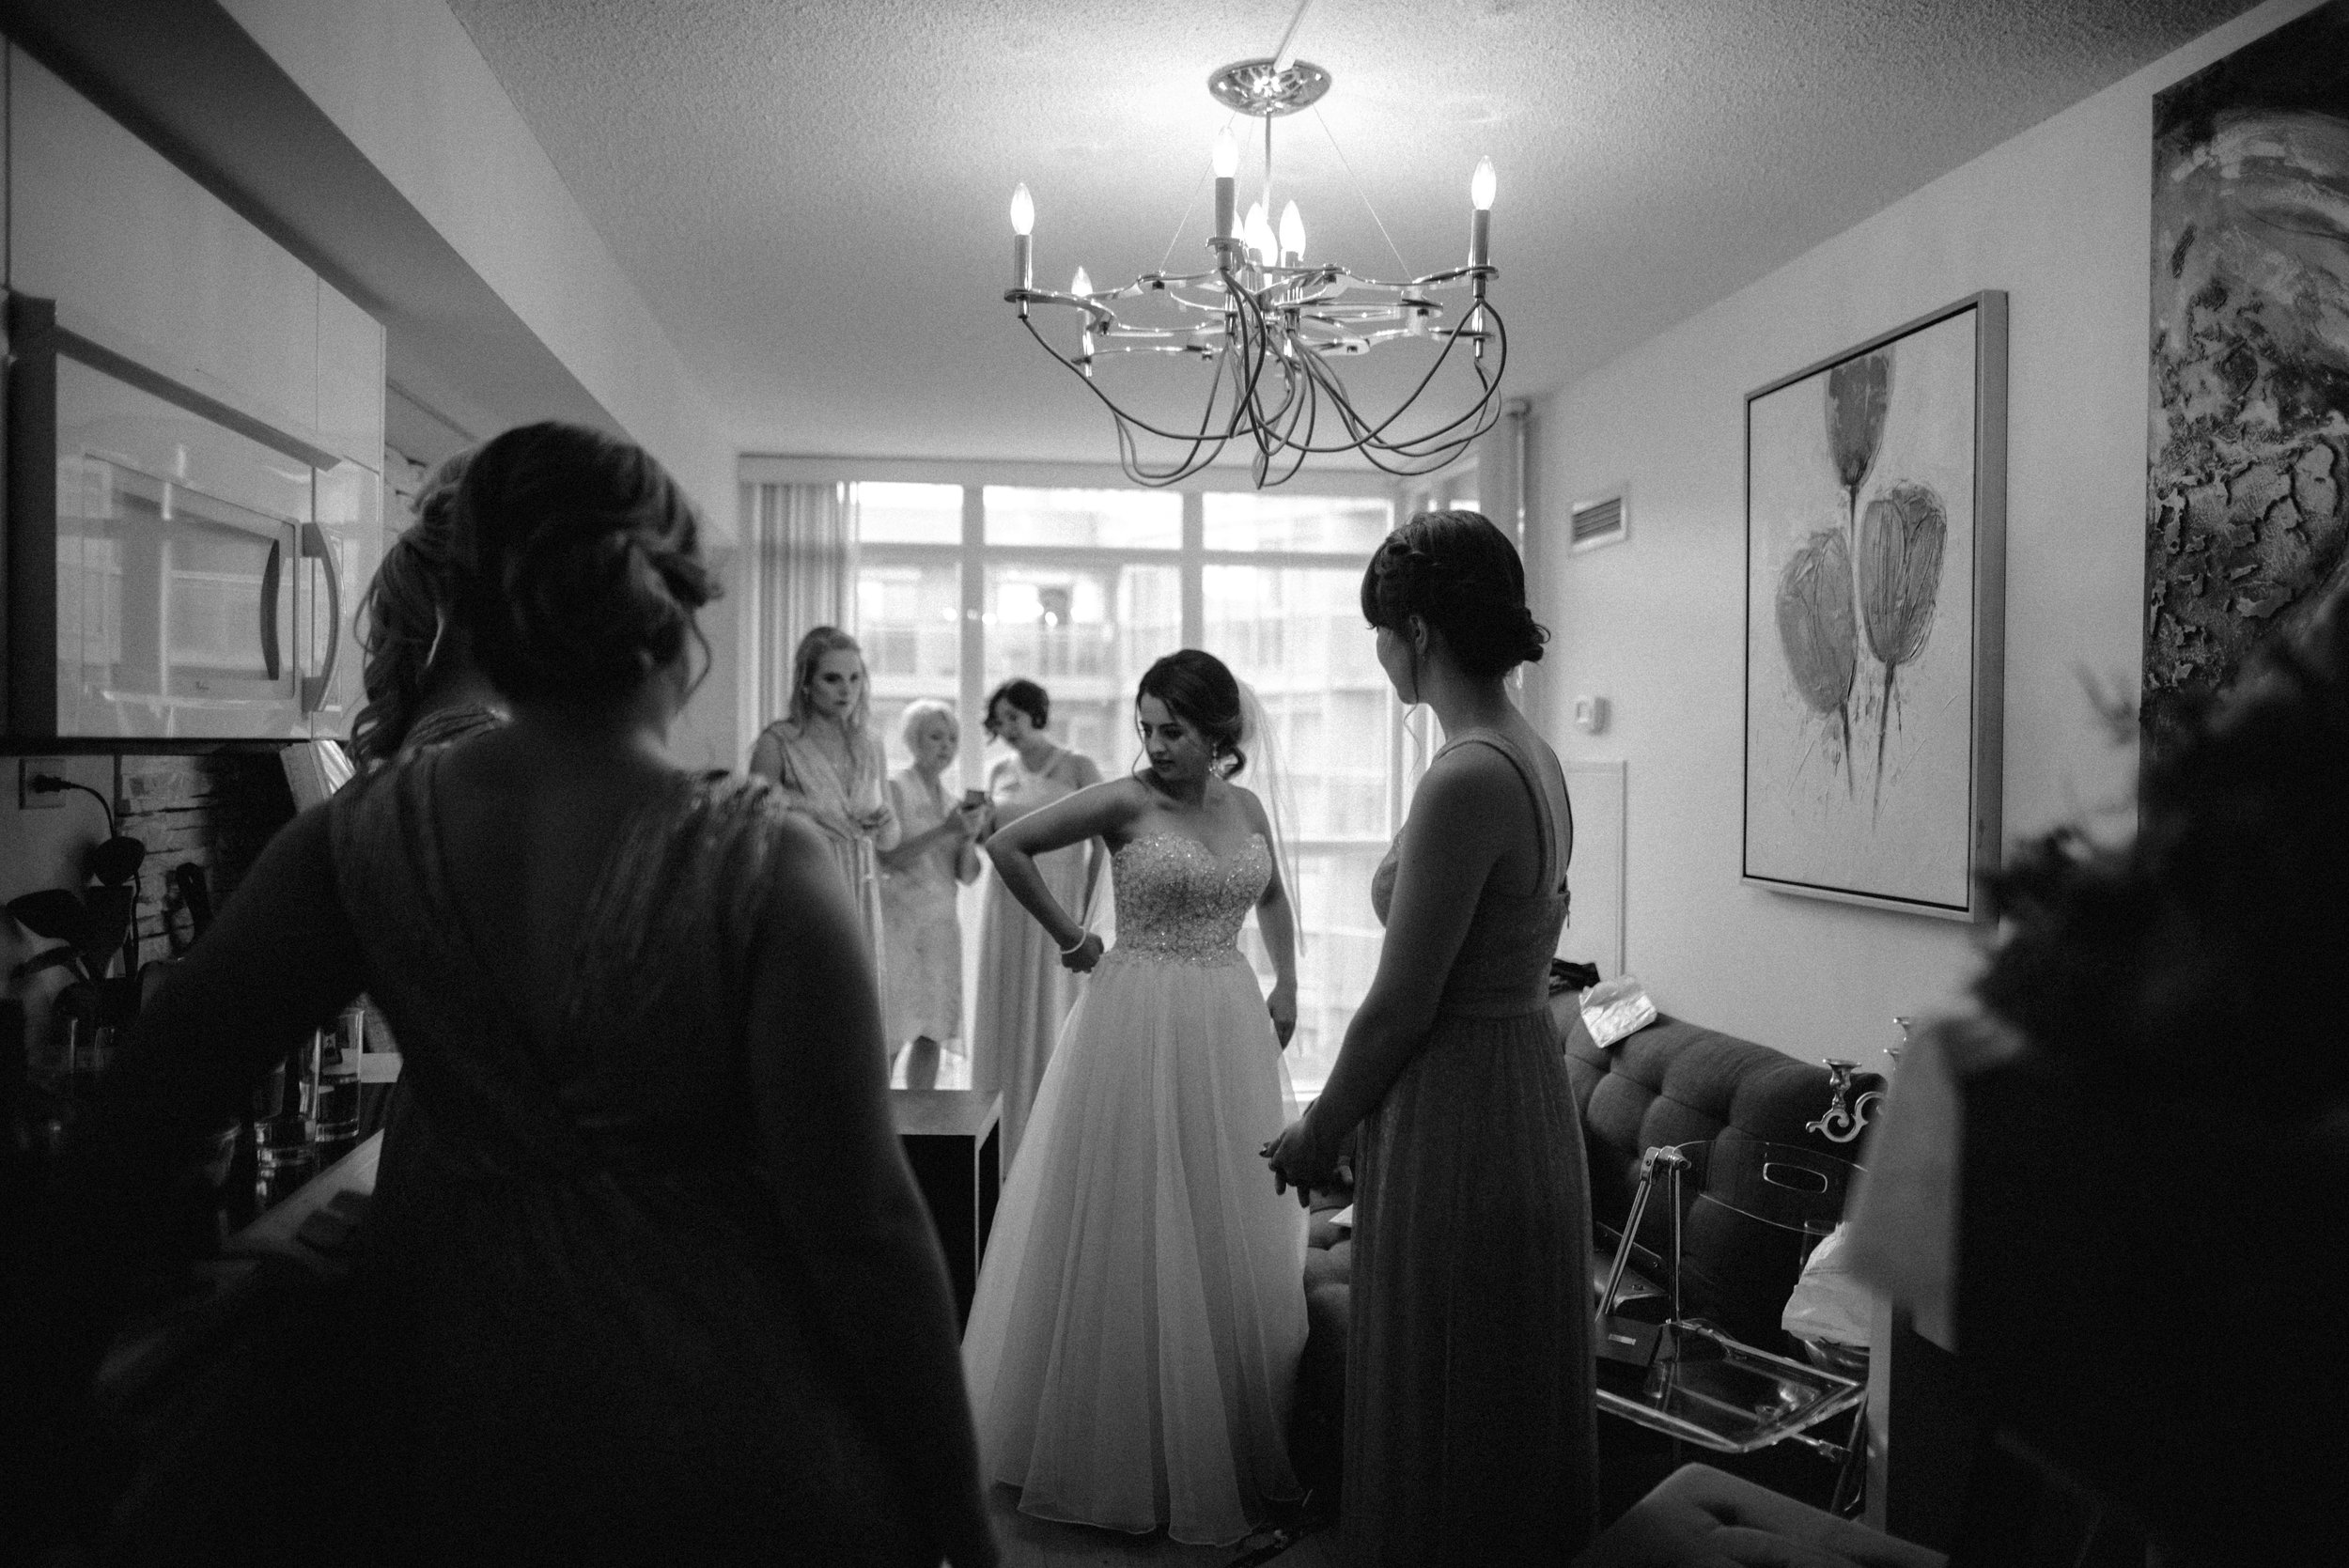 mariage_photographe_toronto_gatineau_ottawa_photographer_wedding-56.jpg